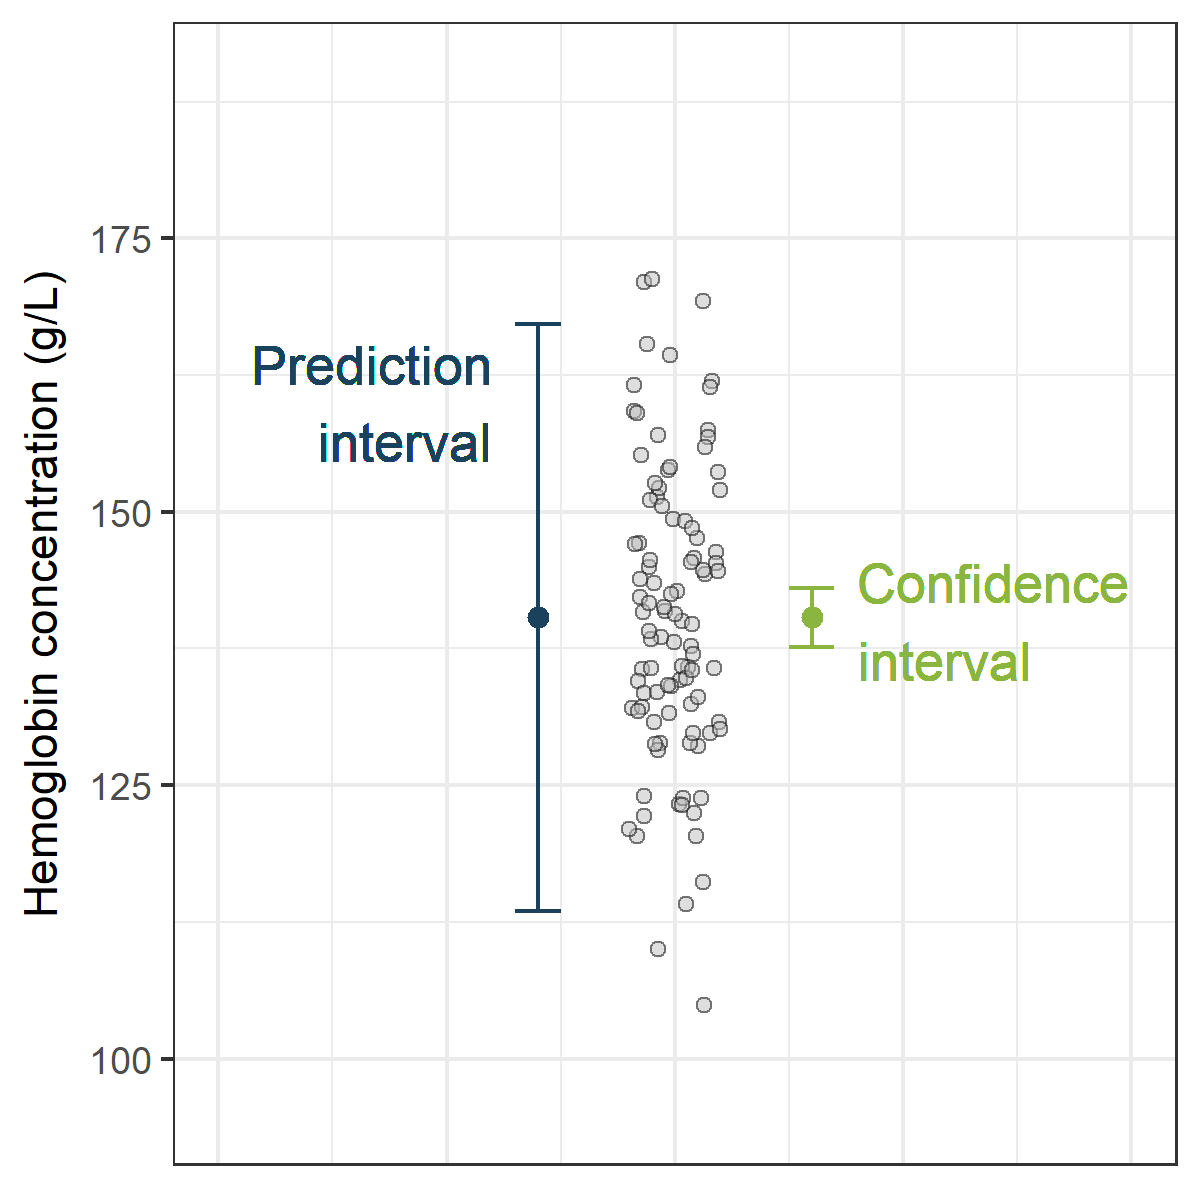 Comparing methods using a prediction interval